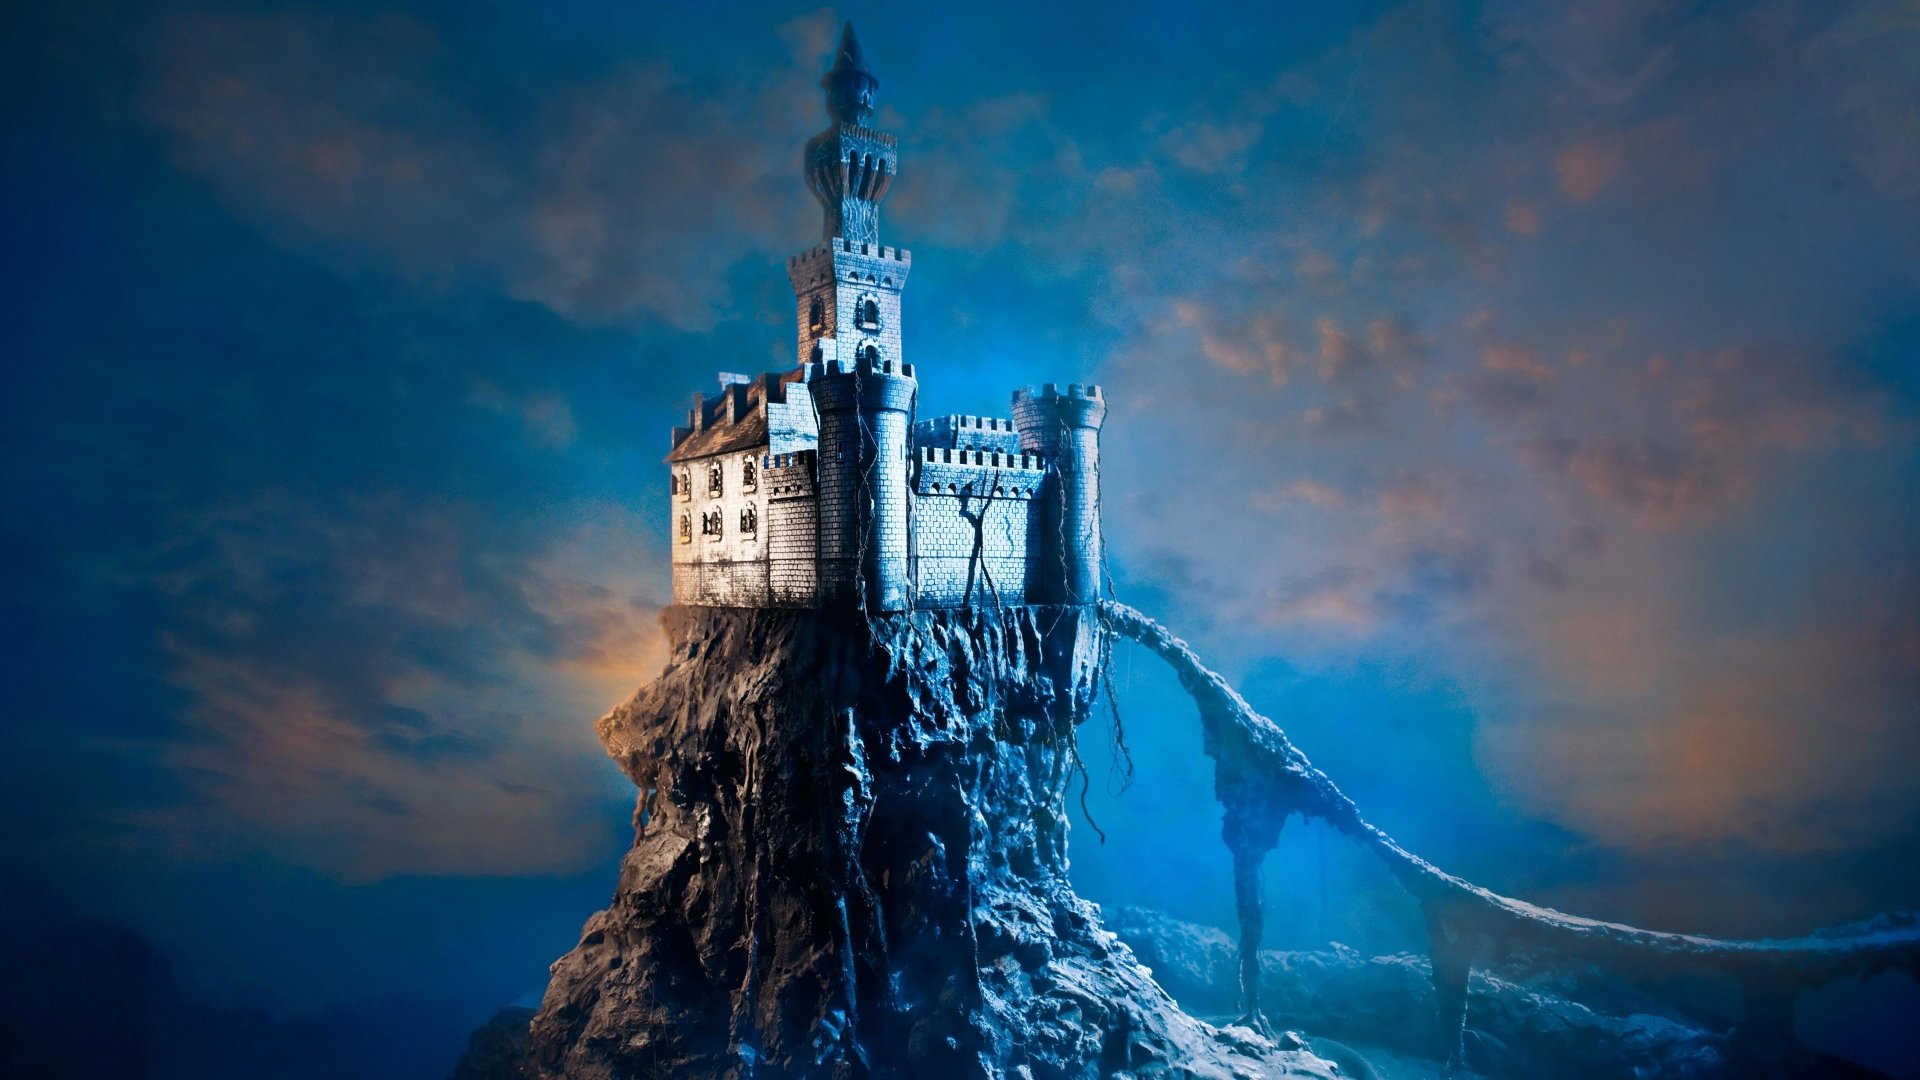 old castle rock wallpapers - photo #30